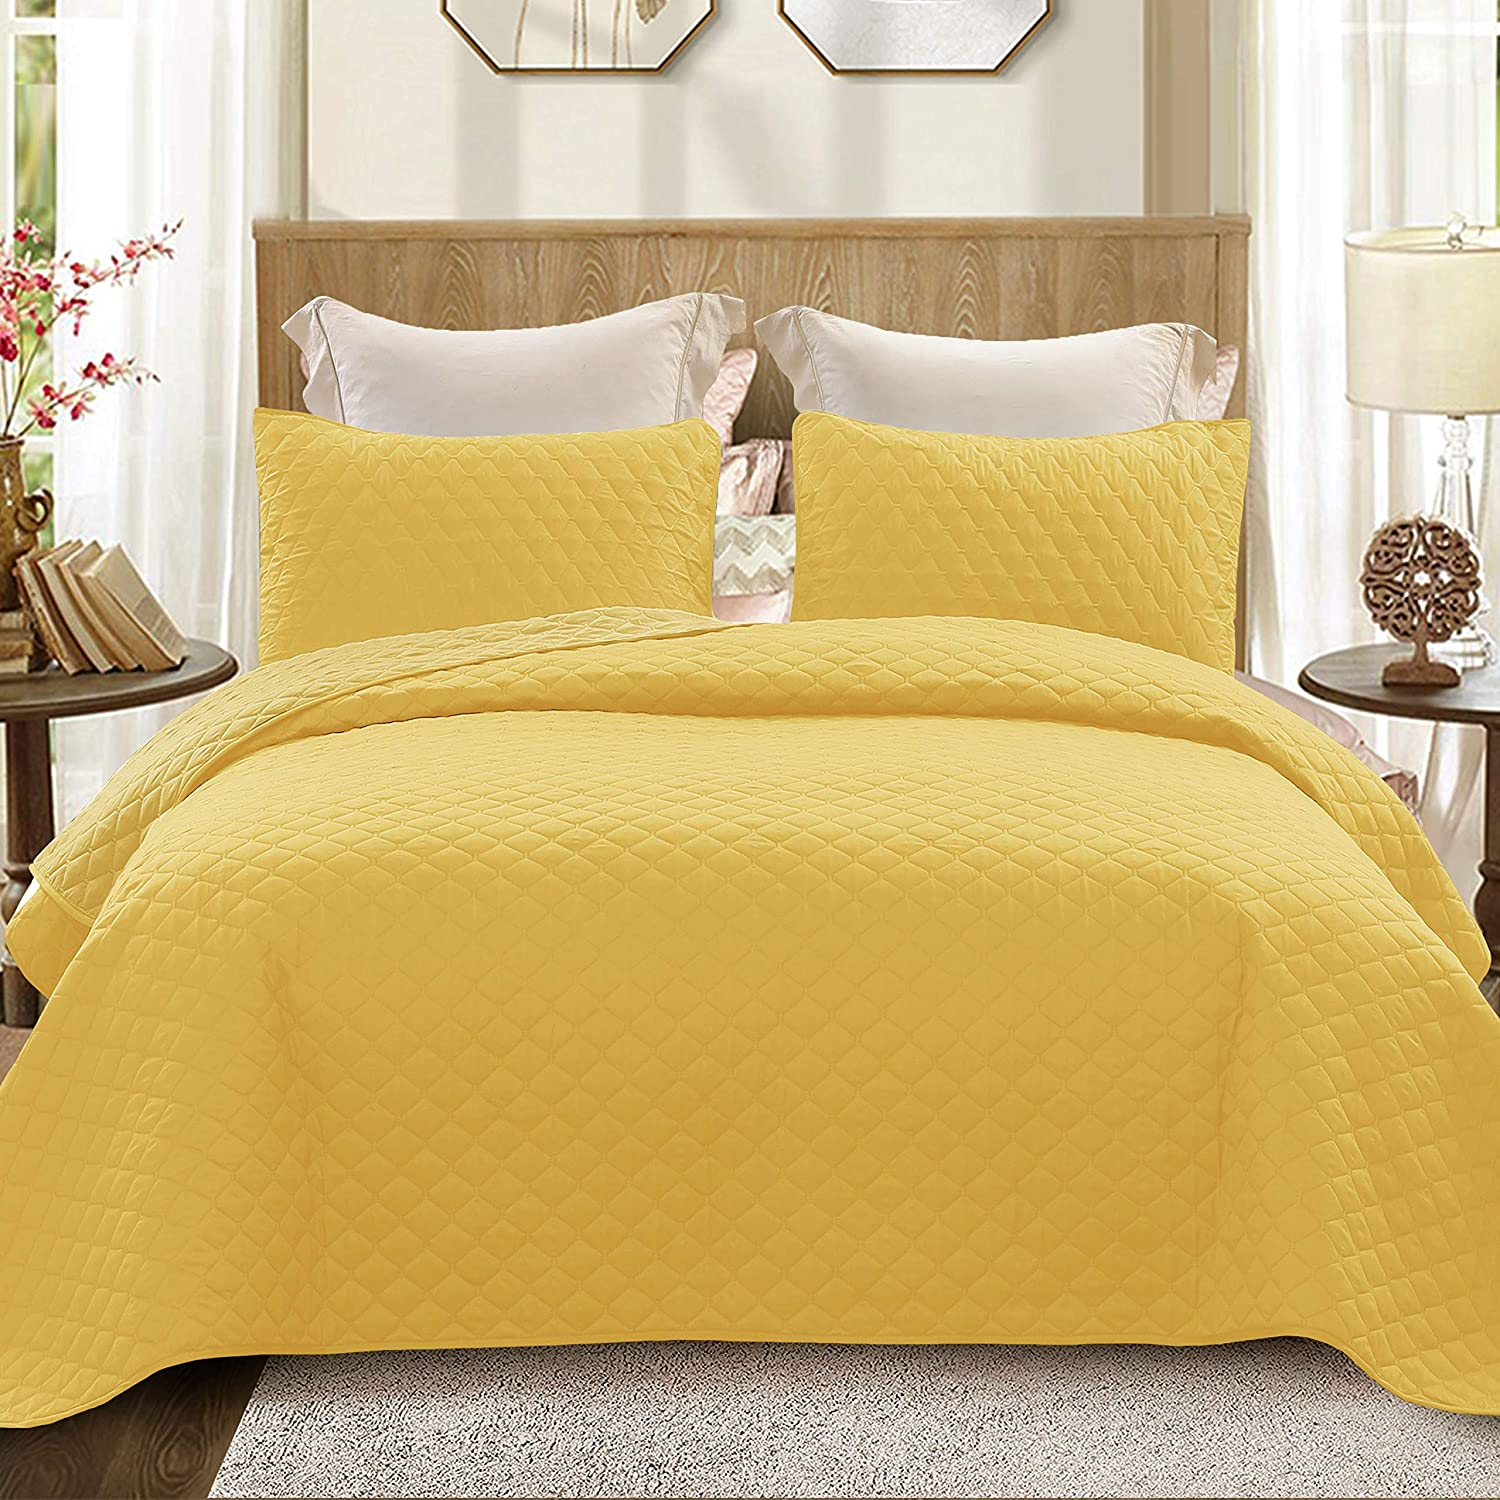 """Exclusivo Mezcla Ultrasonic 3-Piece King Size Quilt Set with Pillow Shams, Lightweight Bedspread/Coverlet/Bed Cover - (Yellow, 92""""x104"""")"""